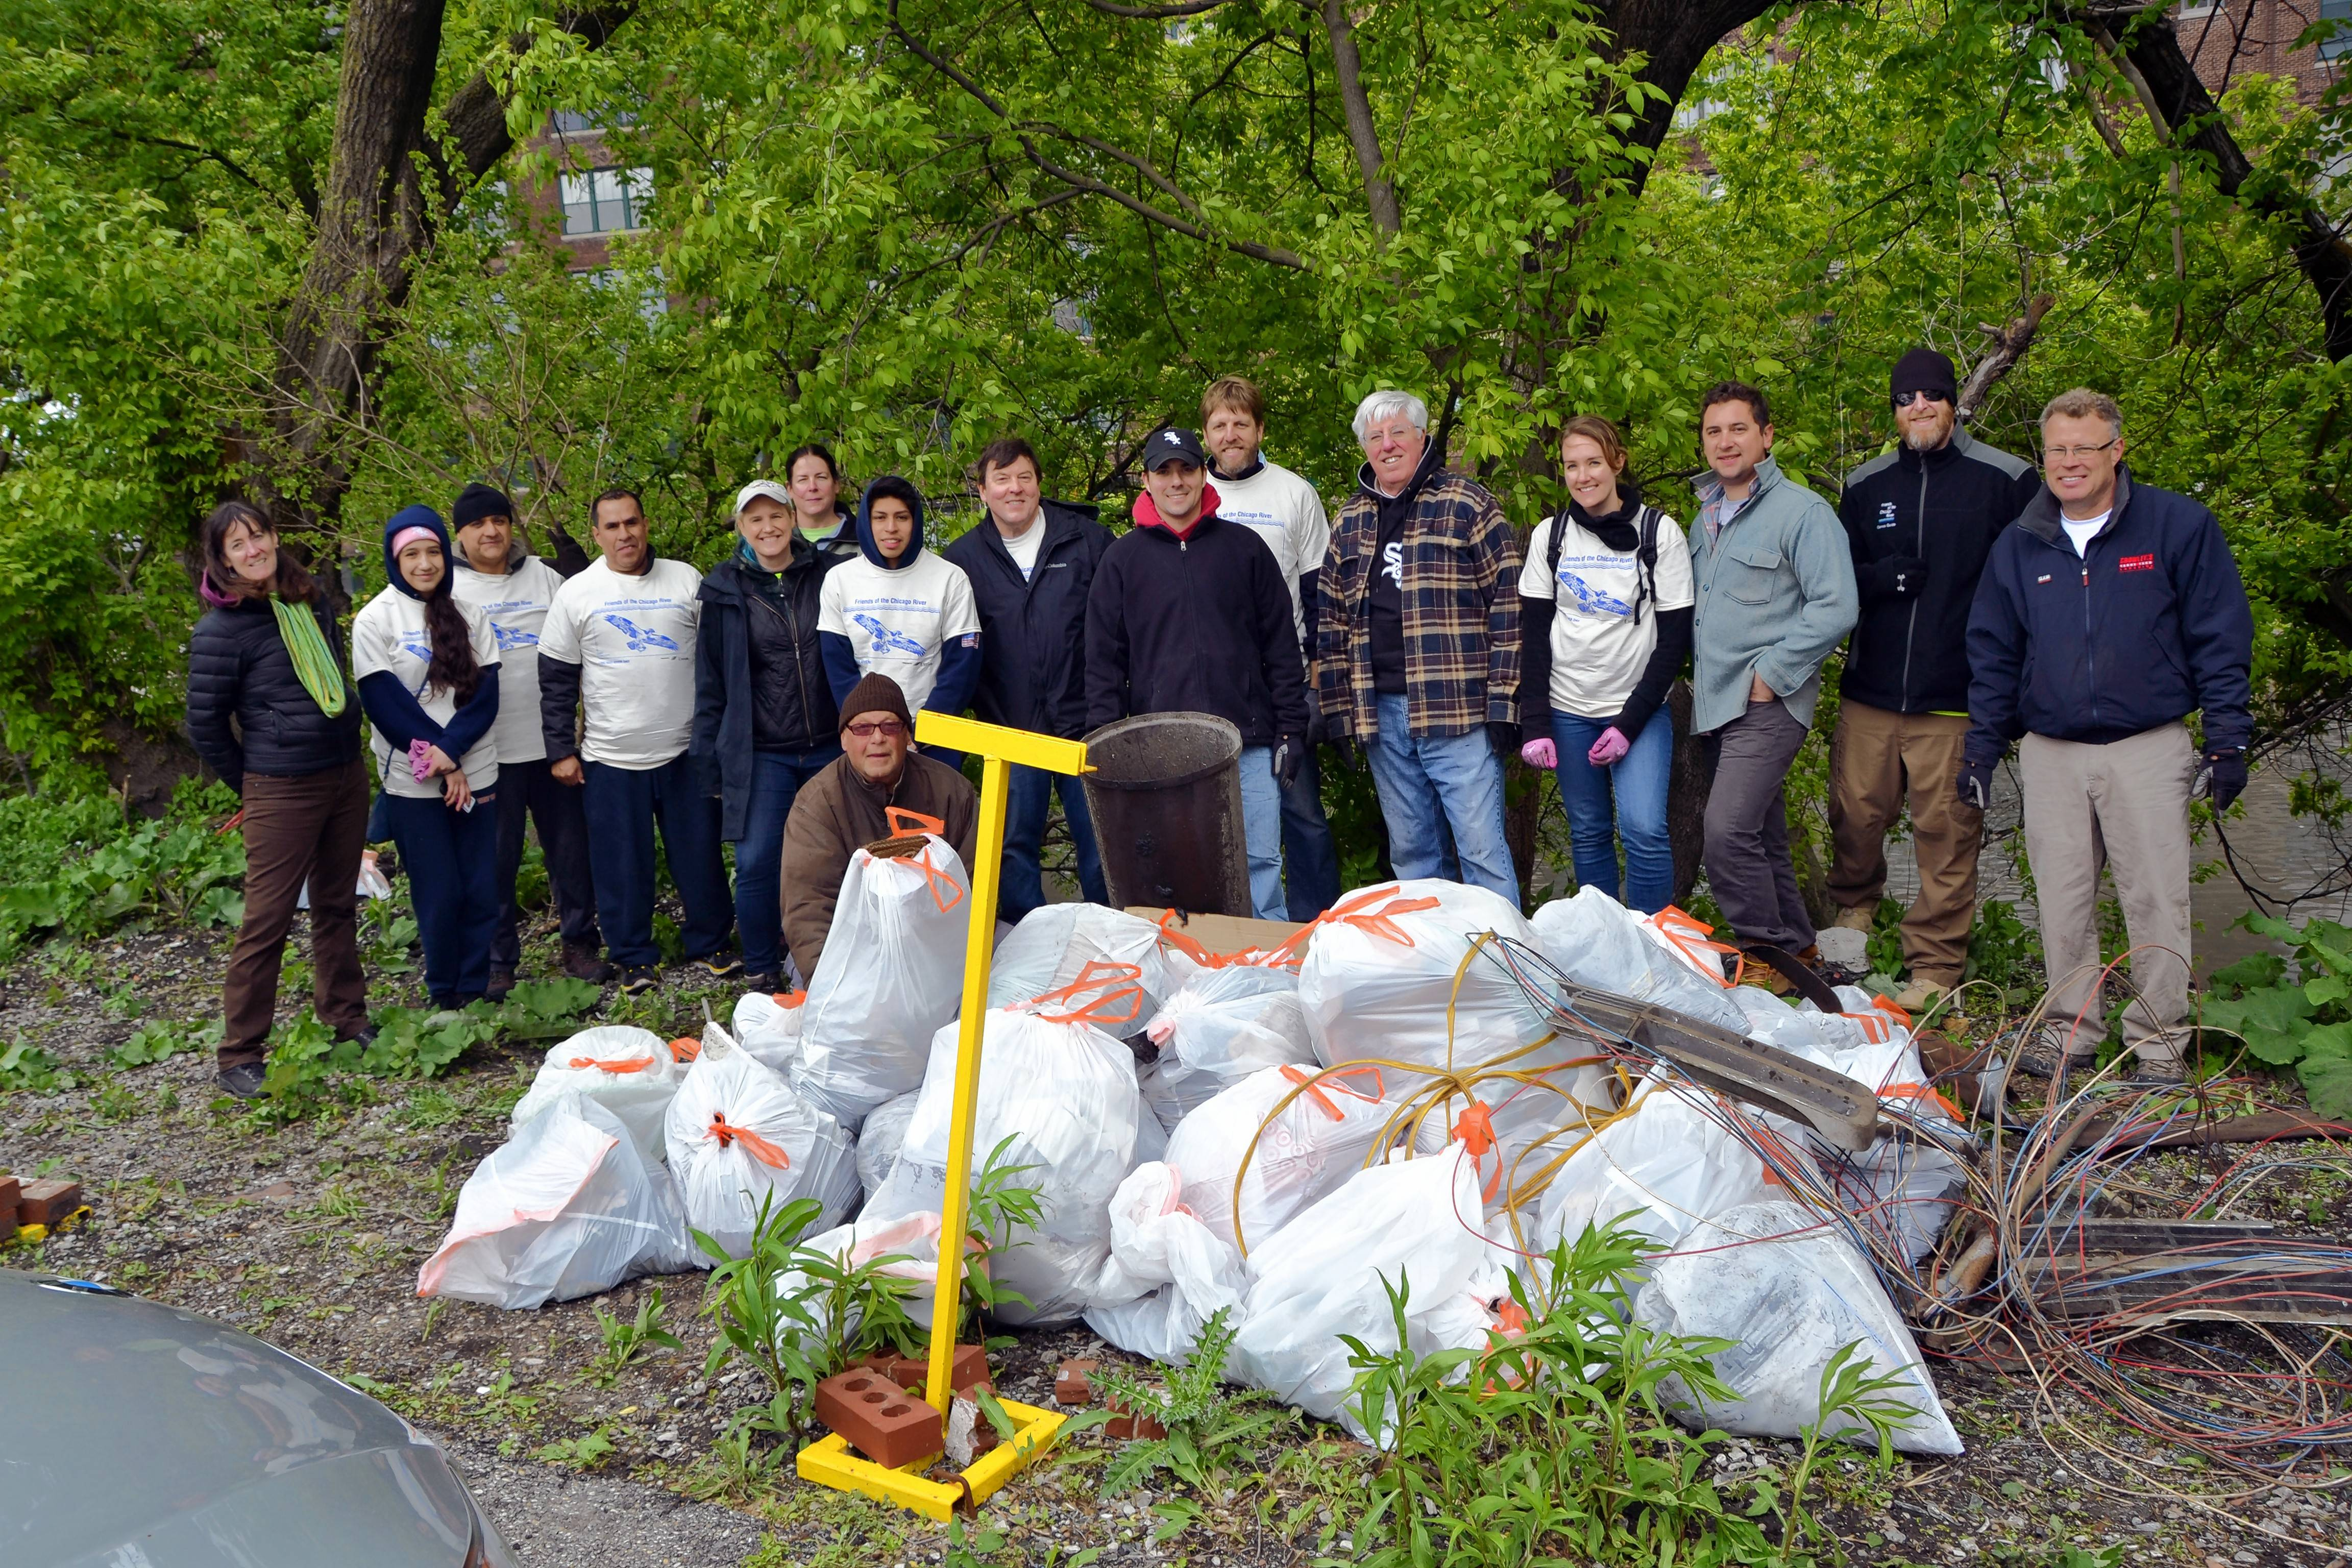 Friends of the Chicago River has lured as many as 60,000 volunteers to help keep the Chicago River clean and restore habitat for native plants and wildlife.